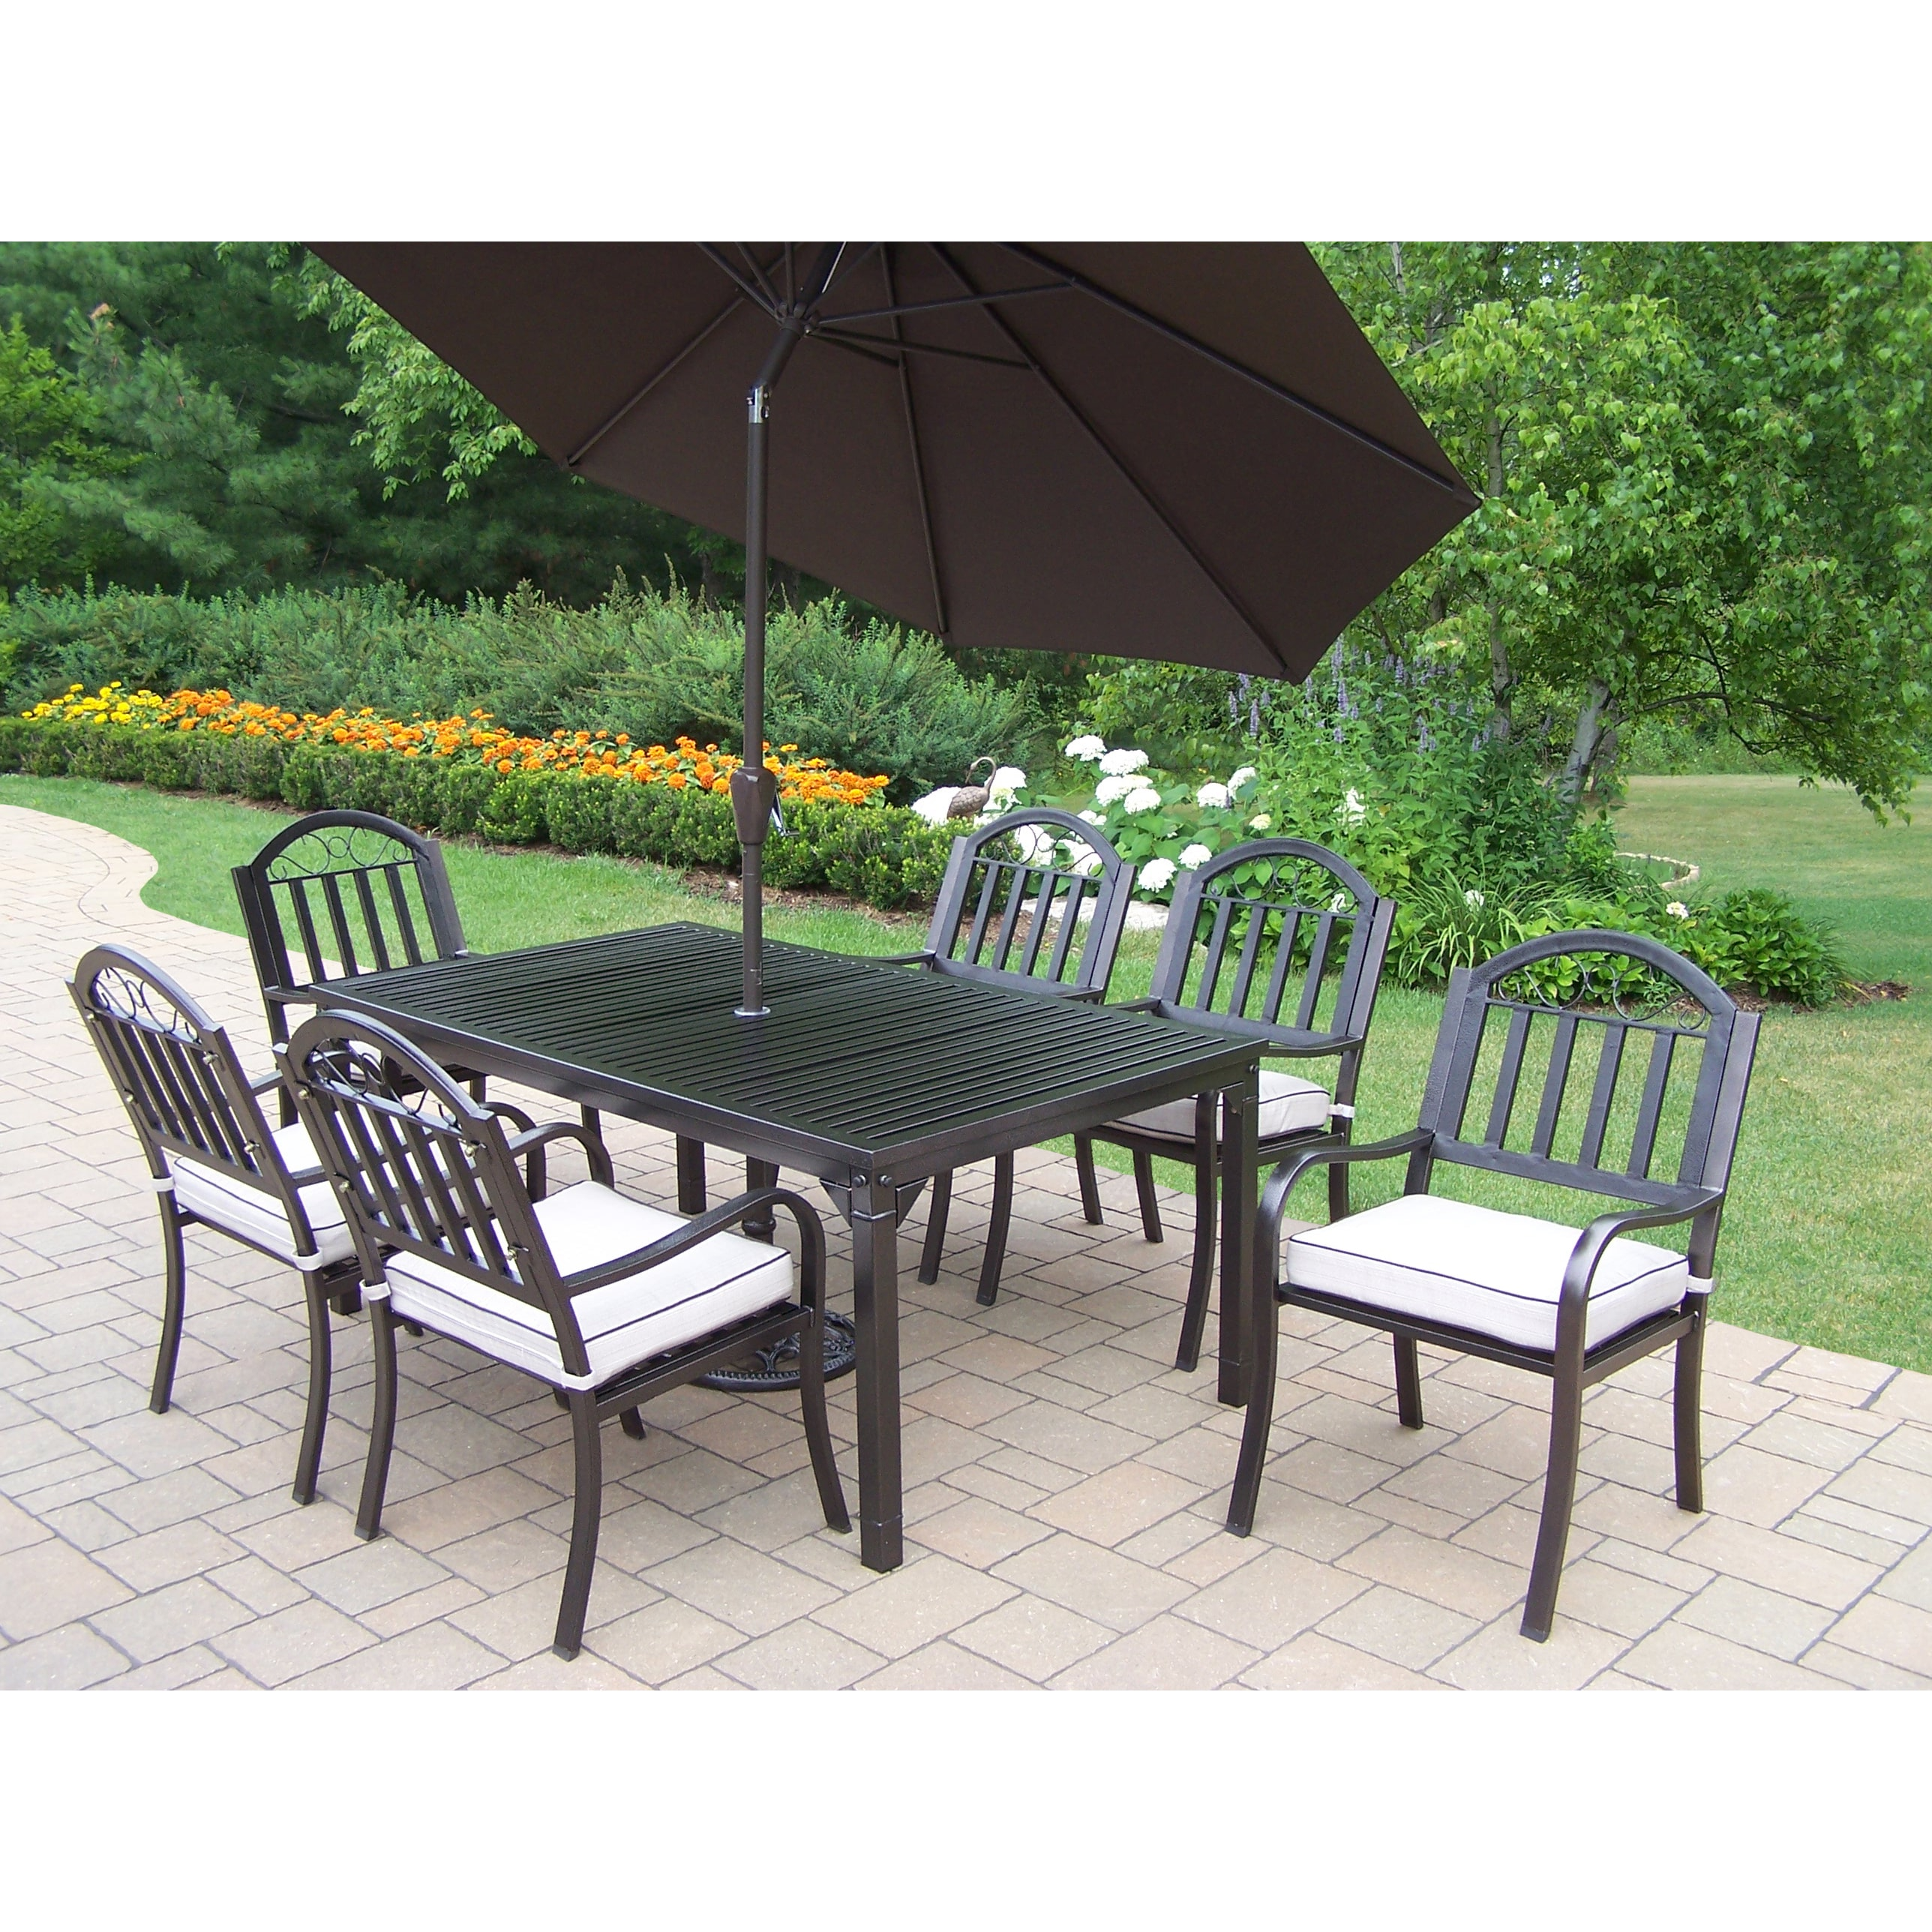 Oakland Living Corporation Hometown Brown Iron and Oatmeal Cushioned 9-piece Patio Dining Set